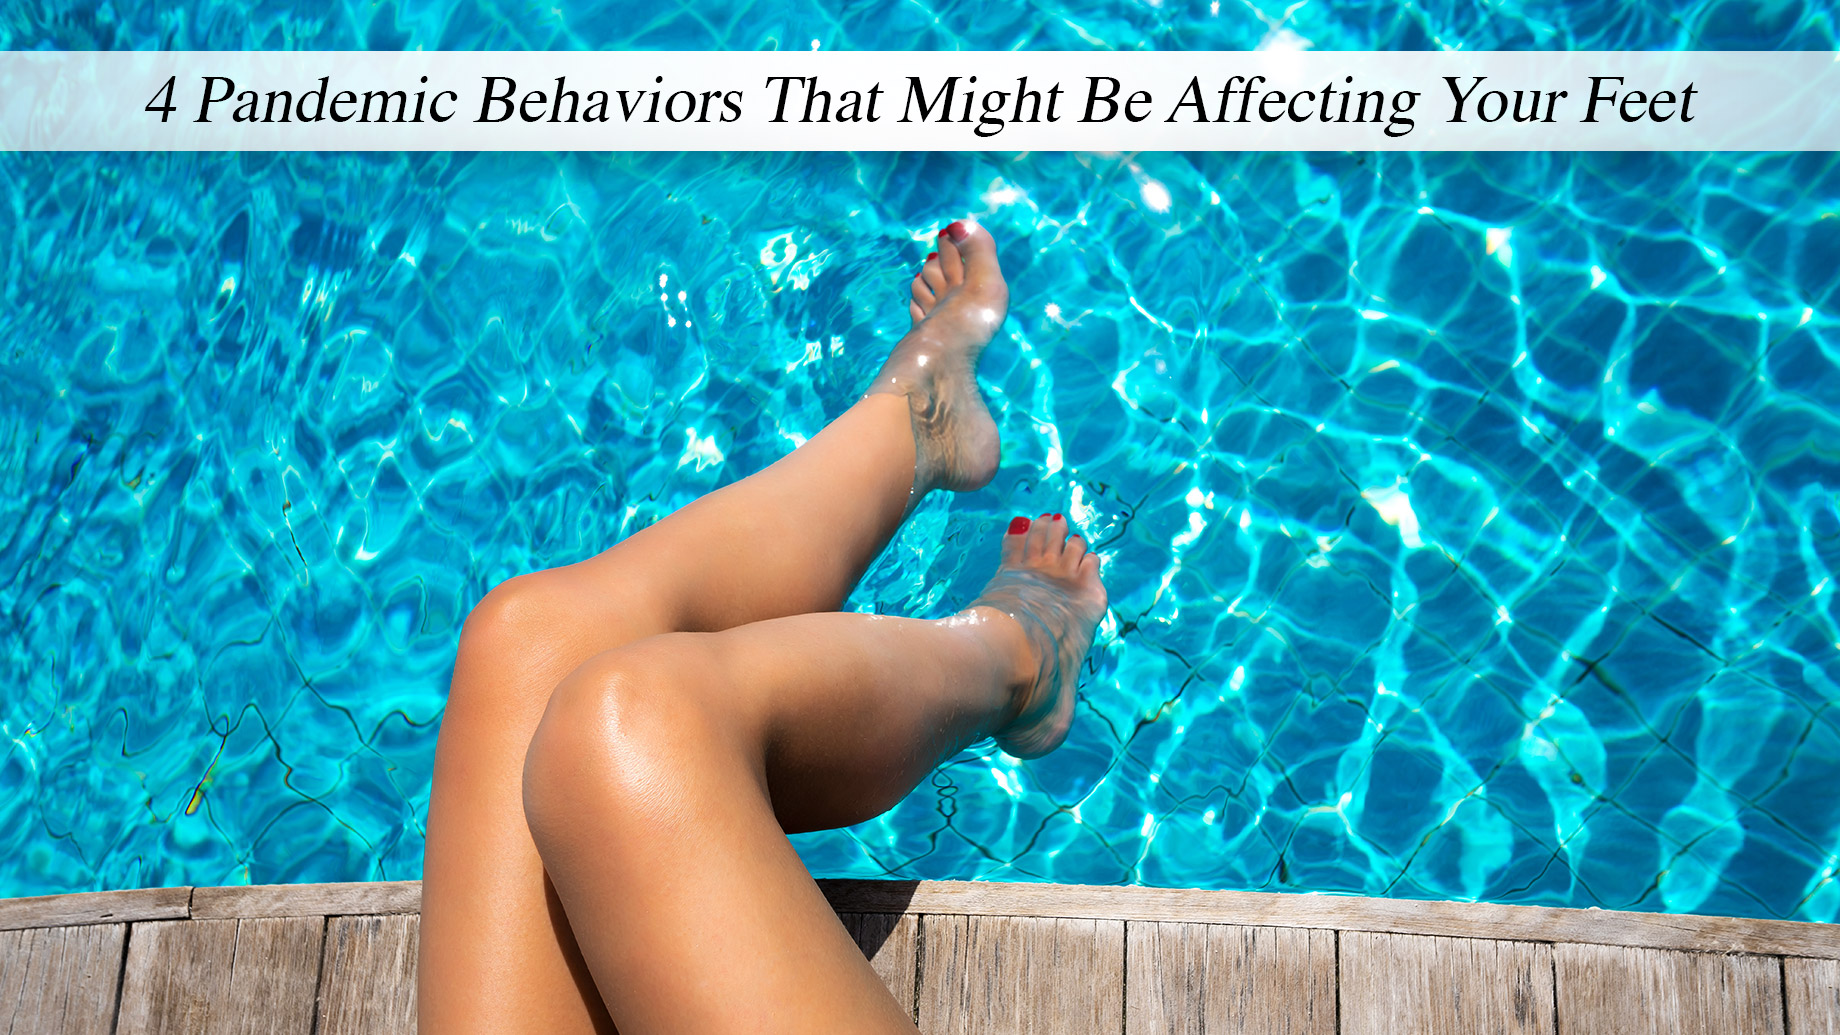 4 Pandemic Behaviors That Might Be Affecting Your Feet